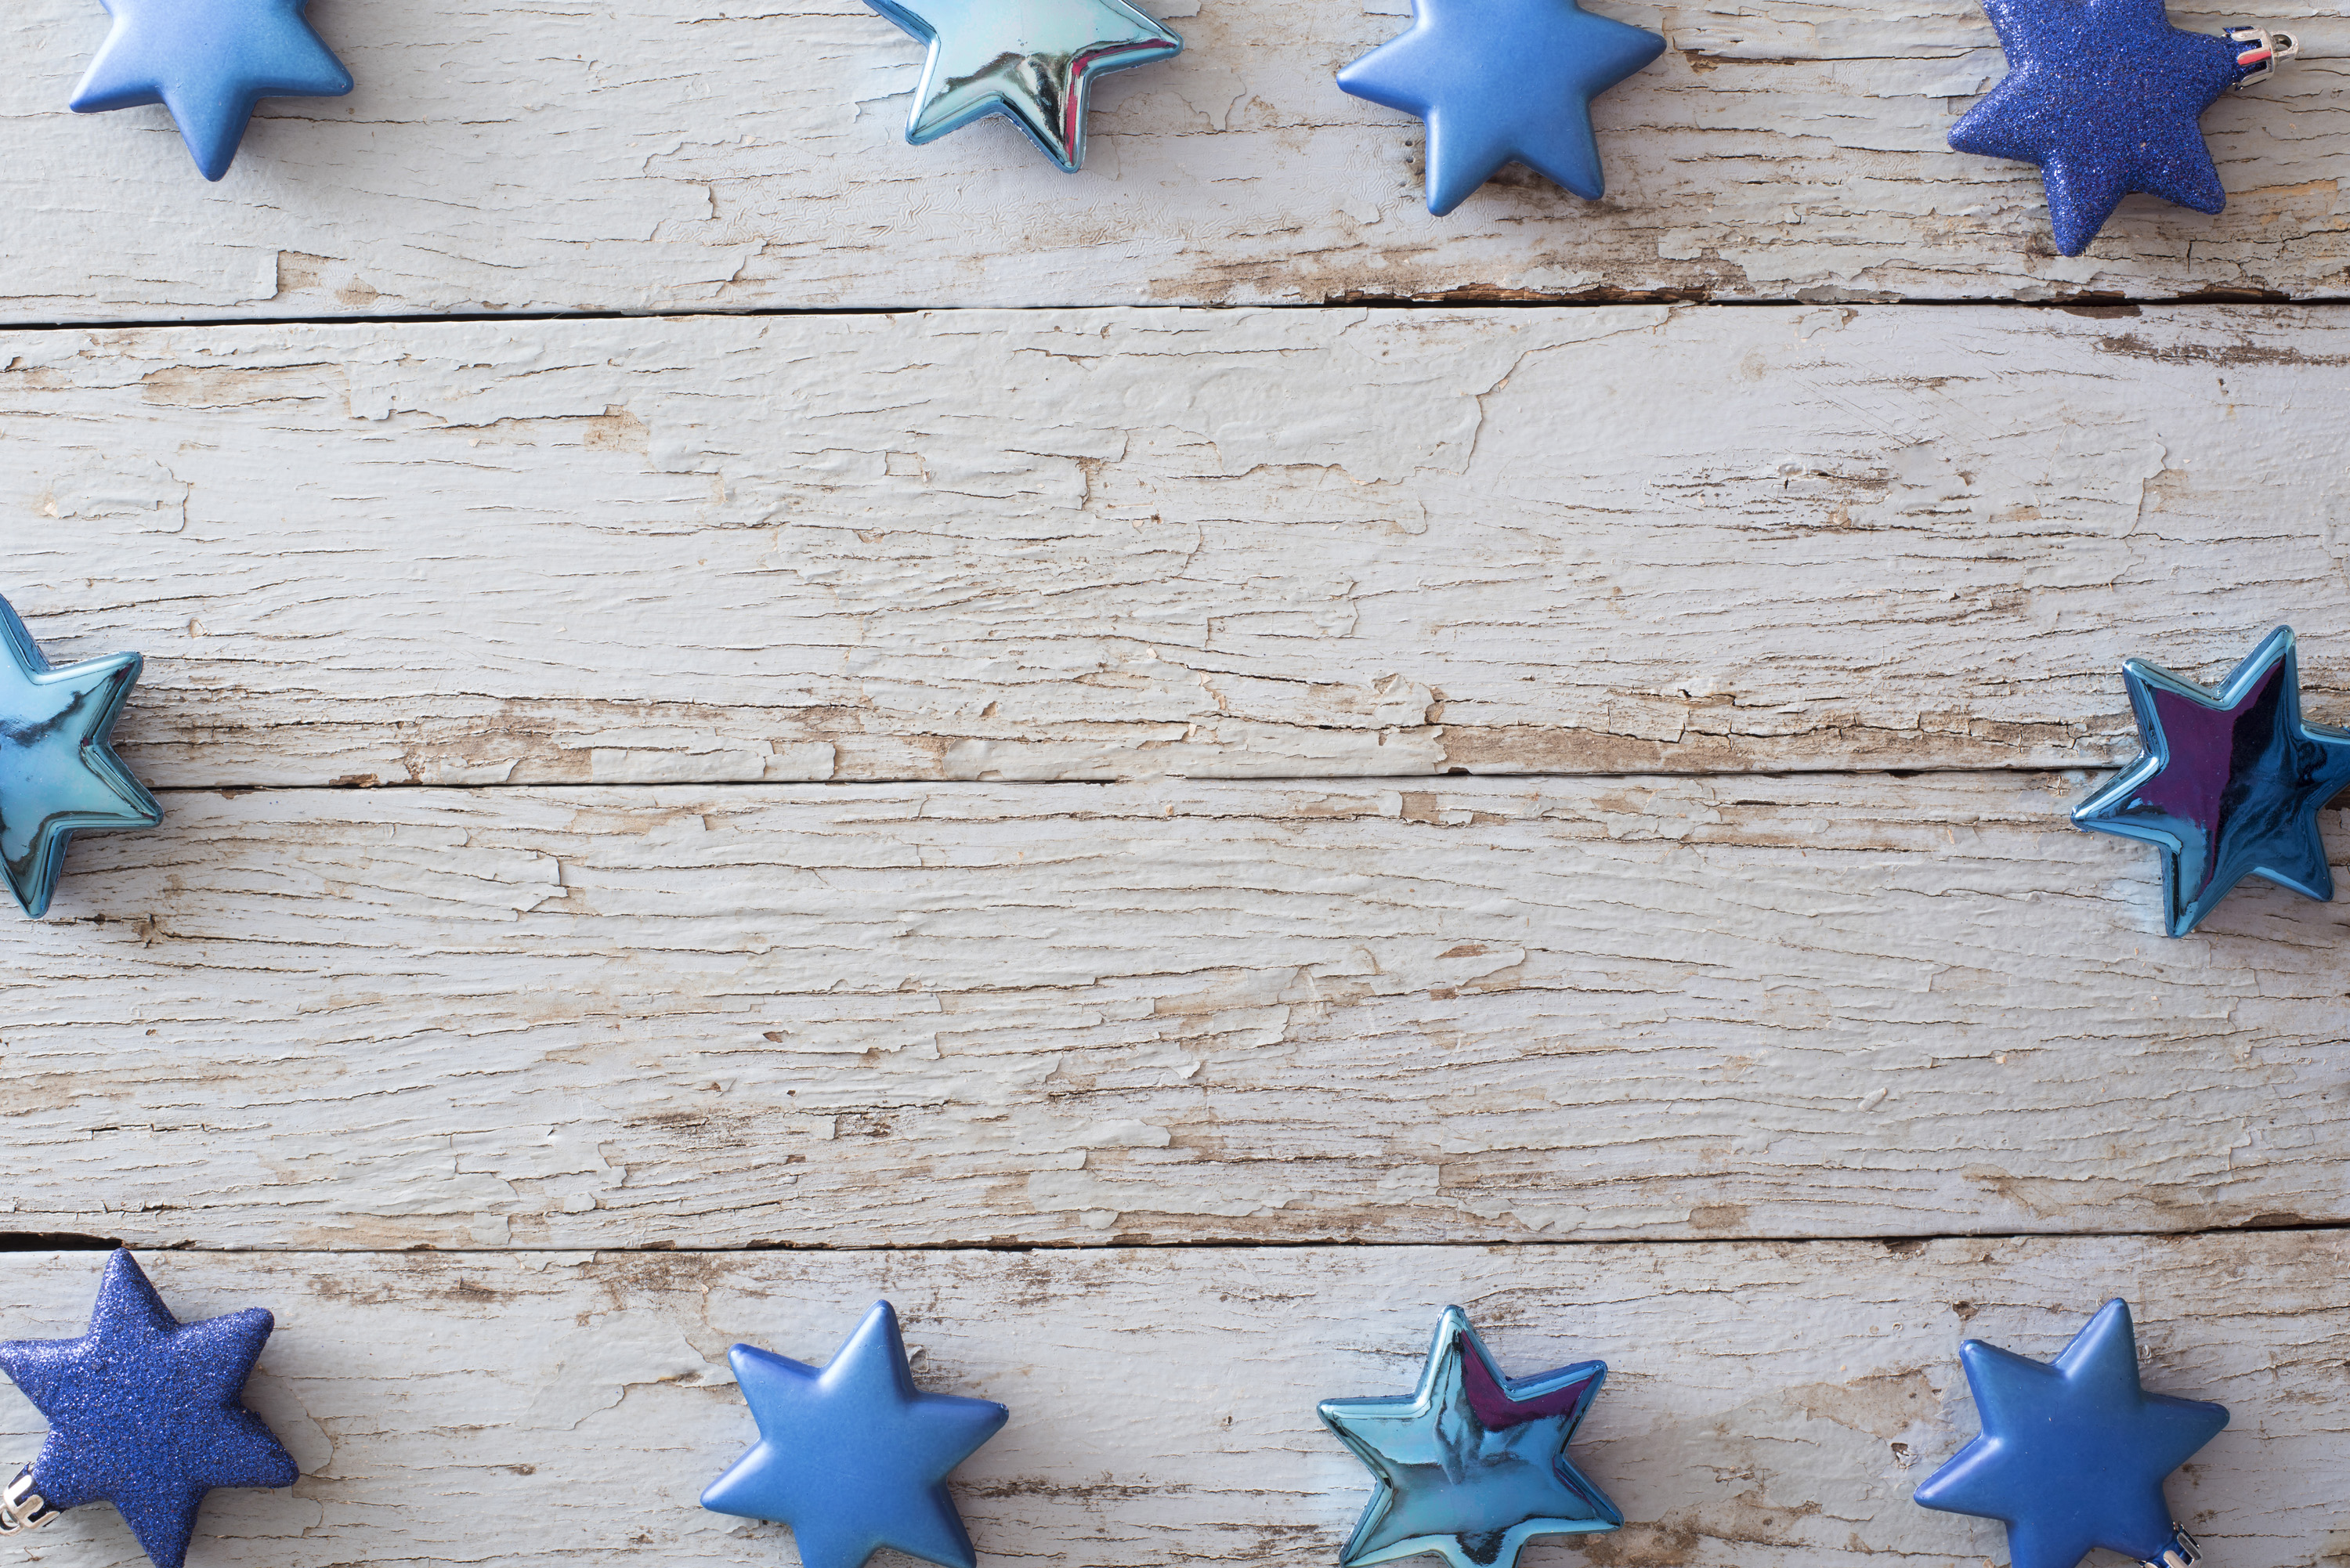 Decorative blue star Christmas border or frame on old rustic weathered textured wood around a central copy space for your holiday greeting